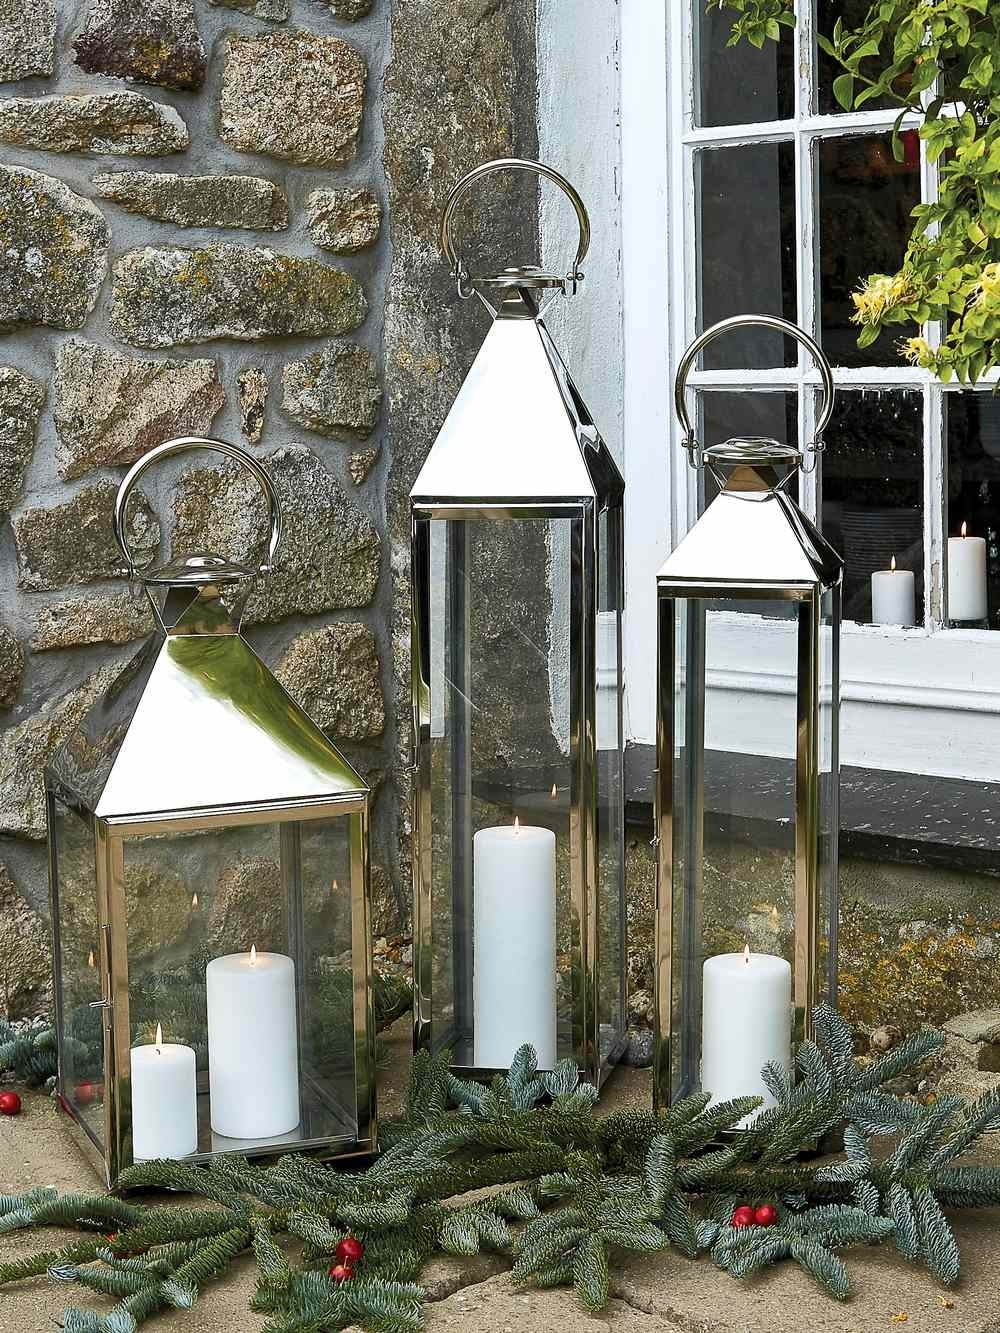 Big Stainless Steel Lanterns | Large Indoor Candle Lanterns intended for Outdoor Oversized Lanterns (Image 1 of 20)